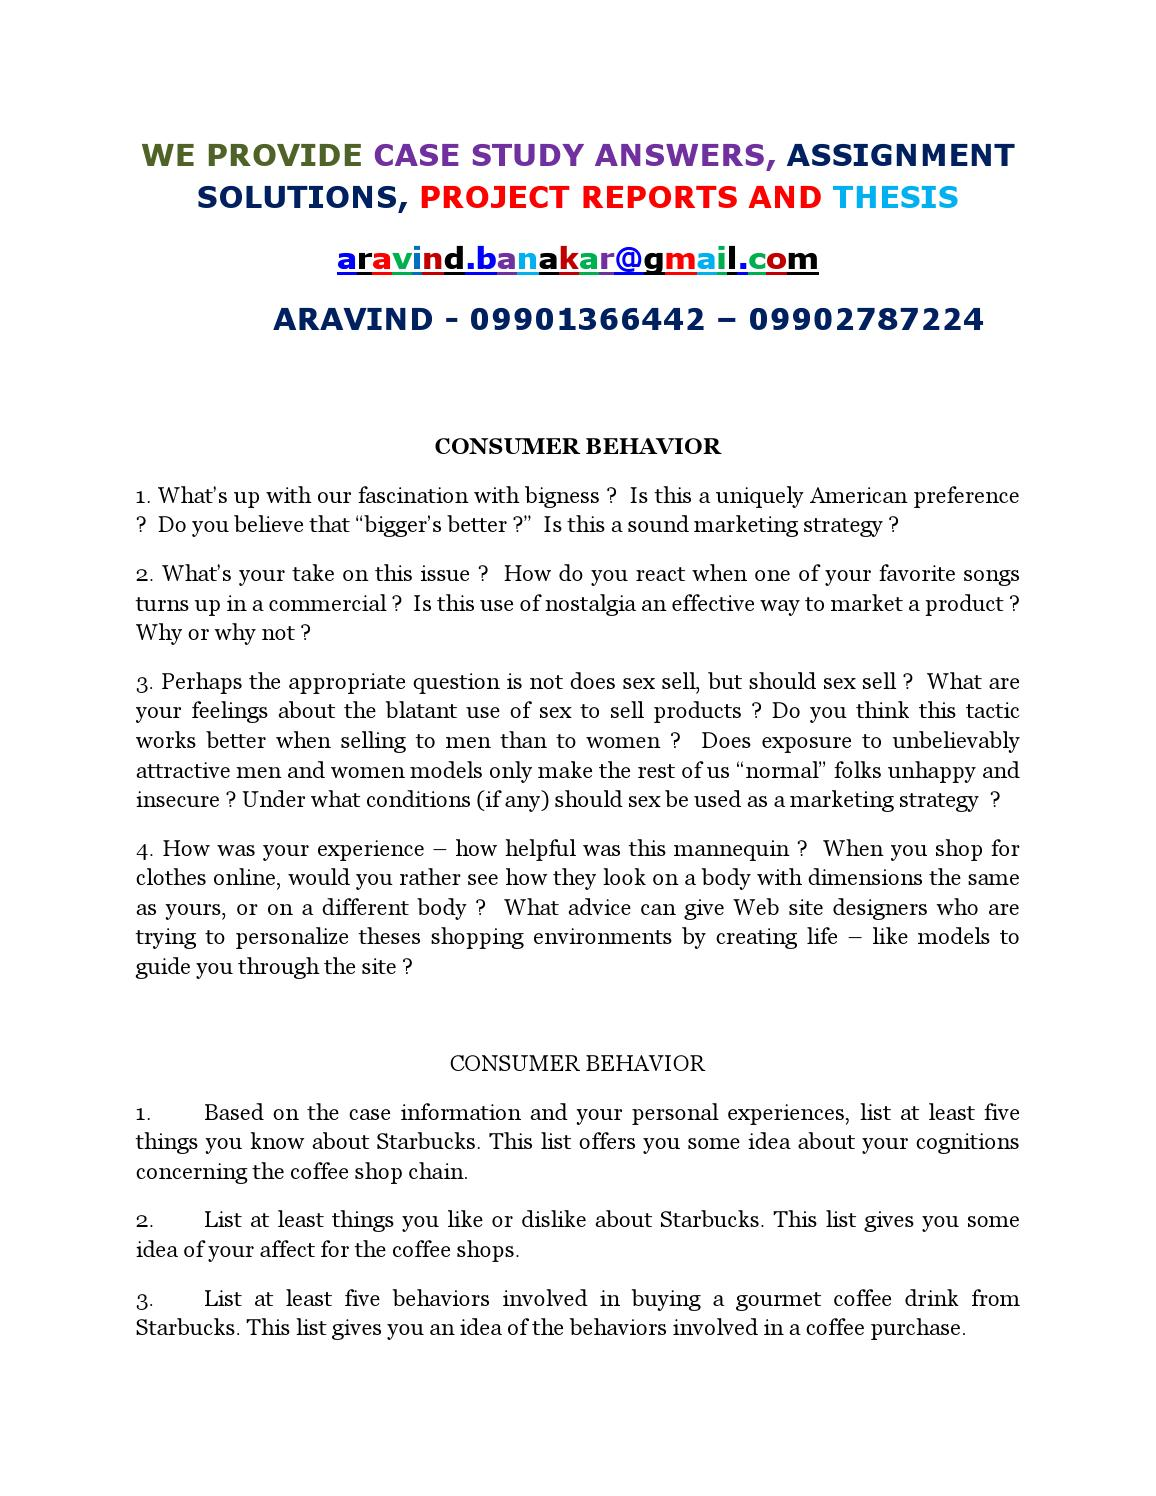 consumer behavior case study with solution